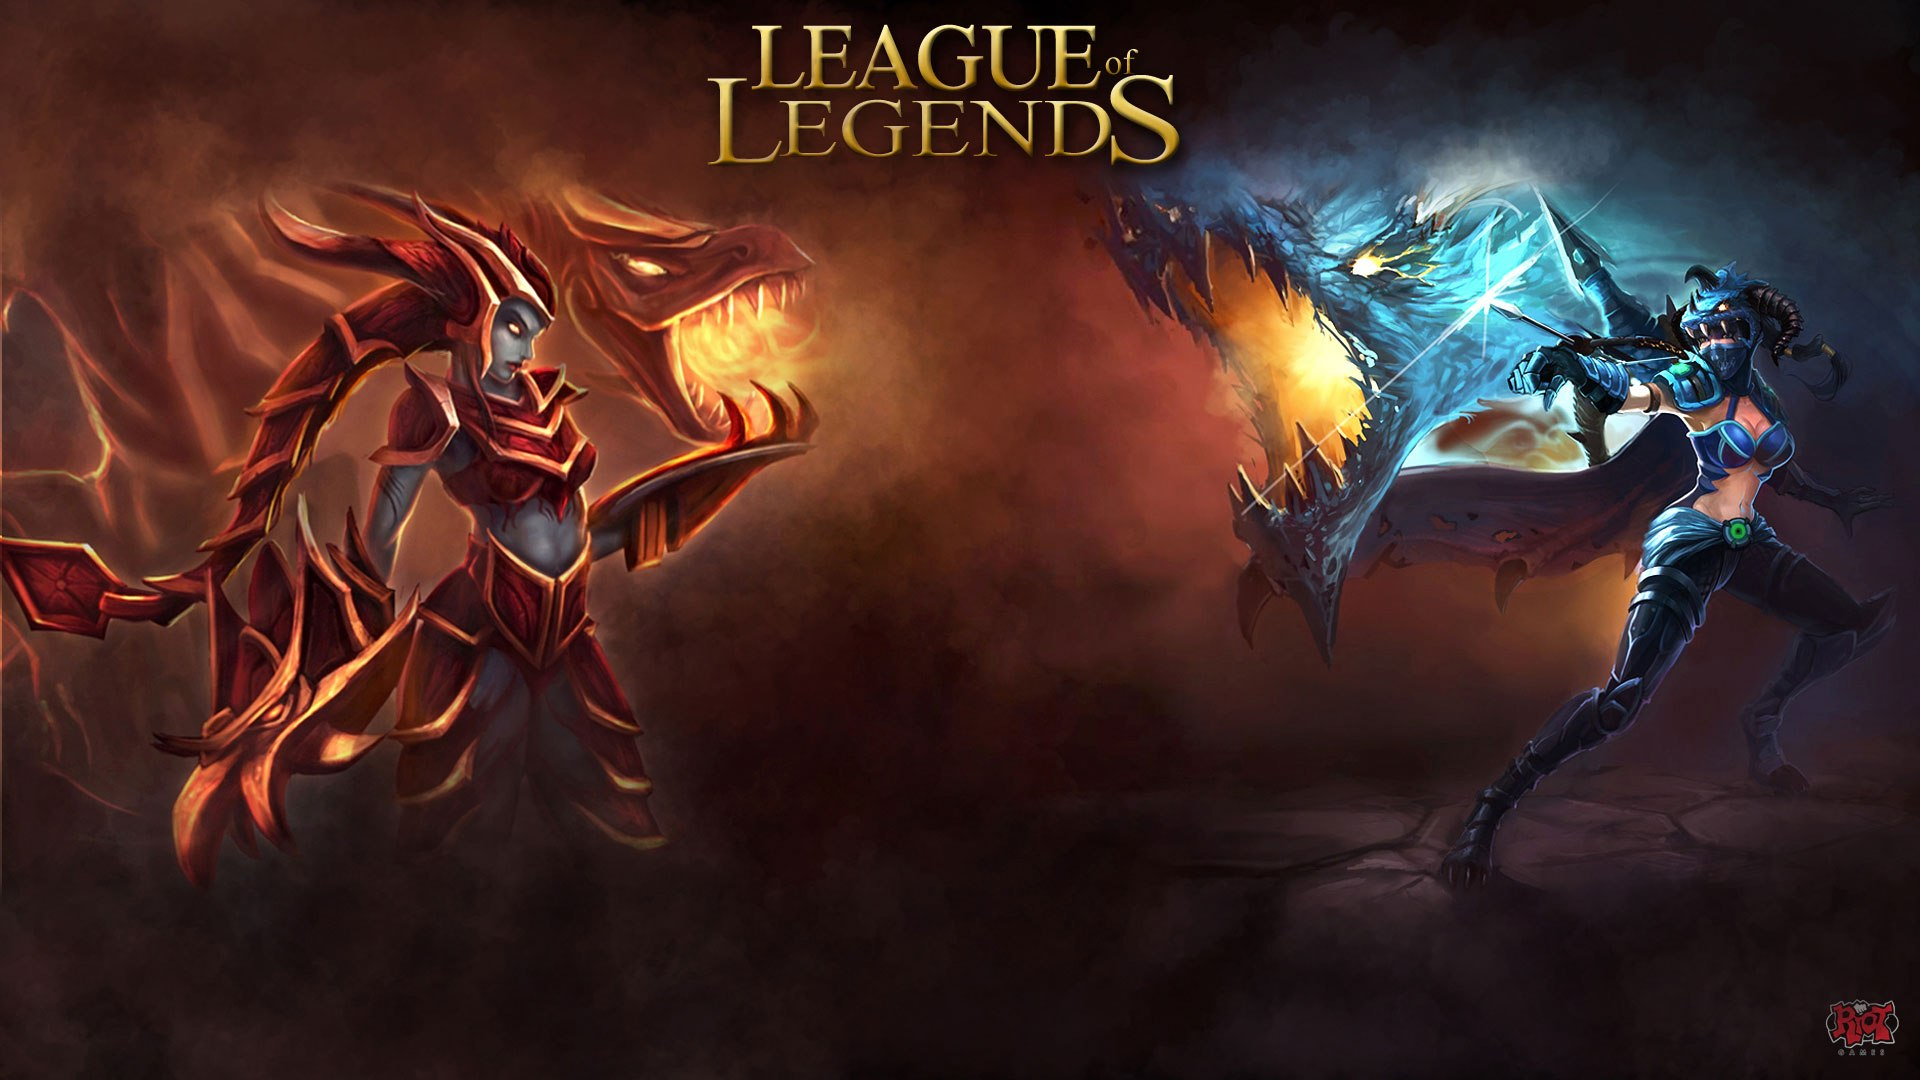 http://img3.wikia.nocookie.net/__cb20130904214649/leagueoflegends/es/images/f/f9/League-of-Legends-Wallpaper-1920x1080-42374.jpg